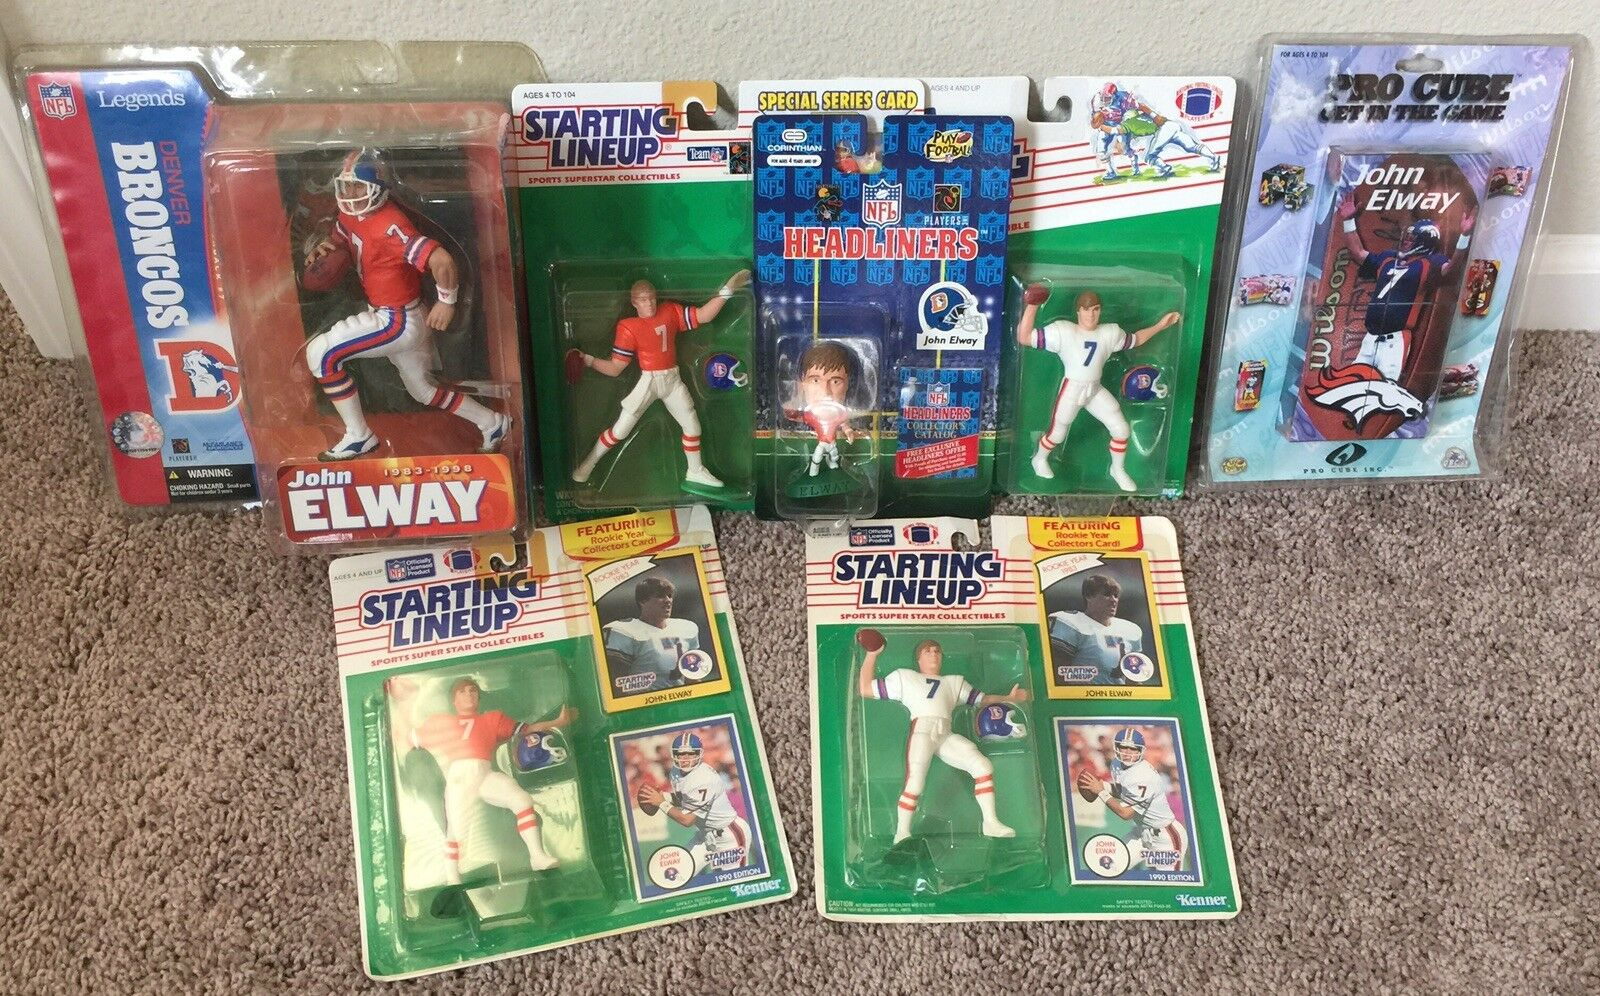 John Elway Figure Collectible Lot Starting Lineup, Legends & Pro Cube Broncos